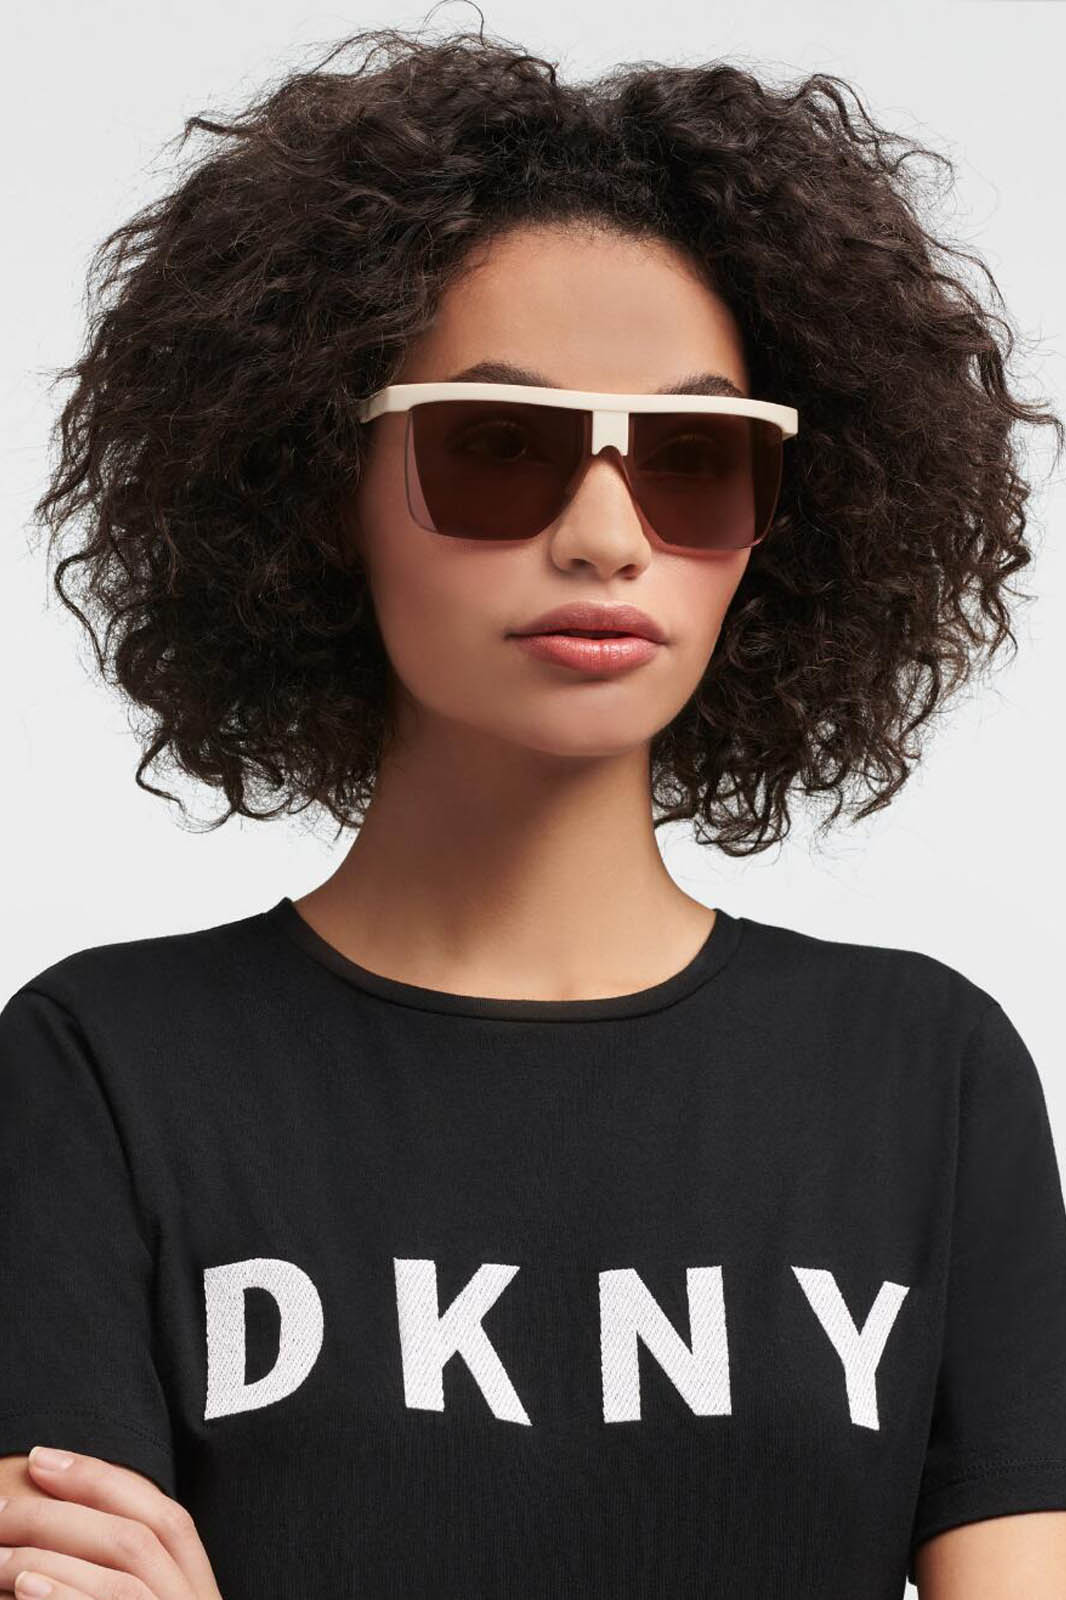 DKNY Accessories